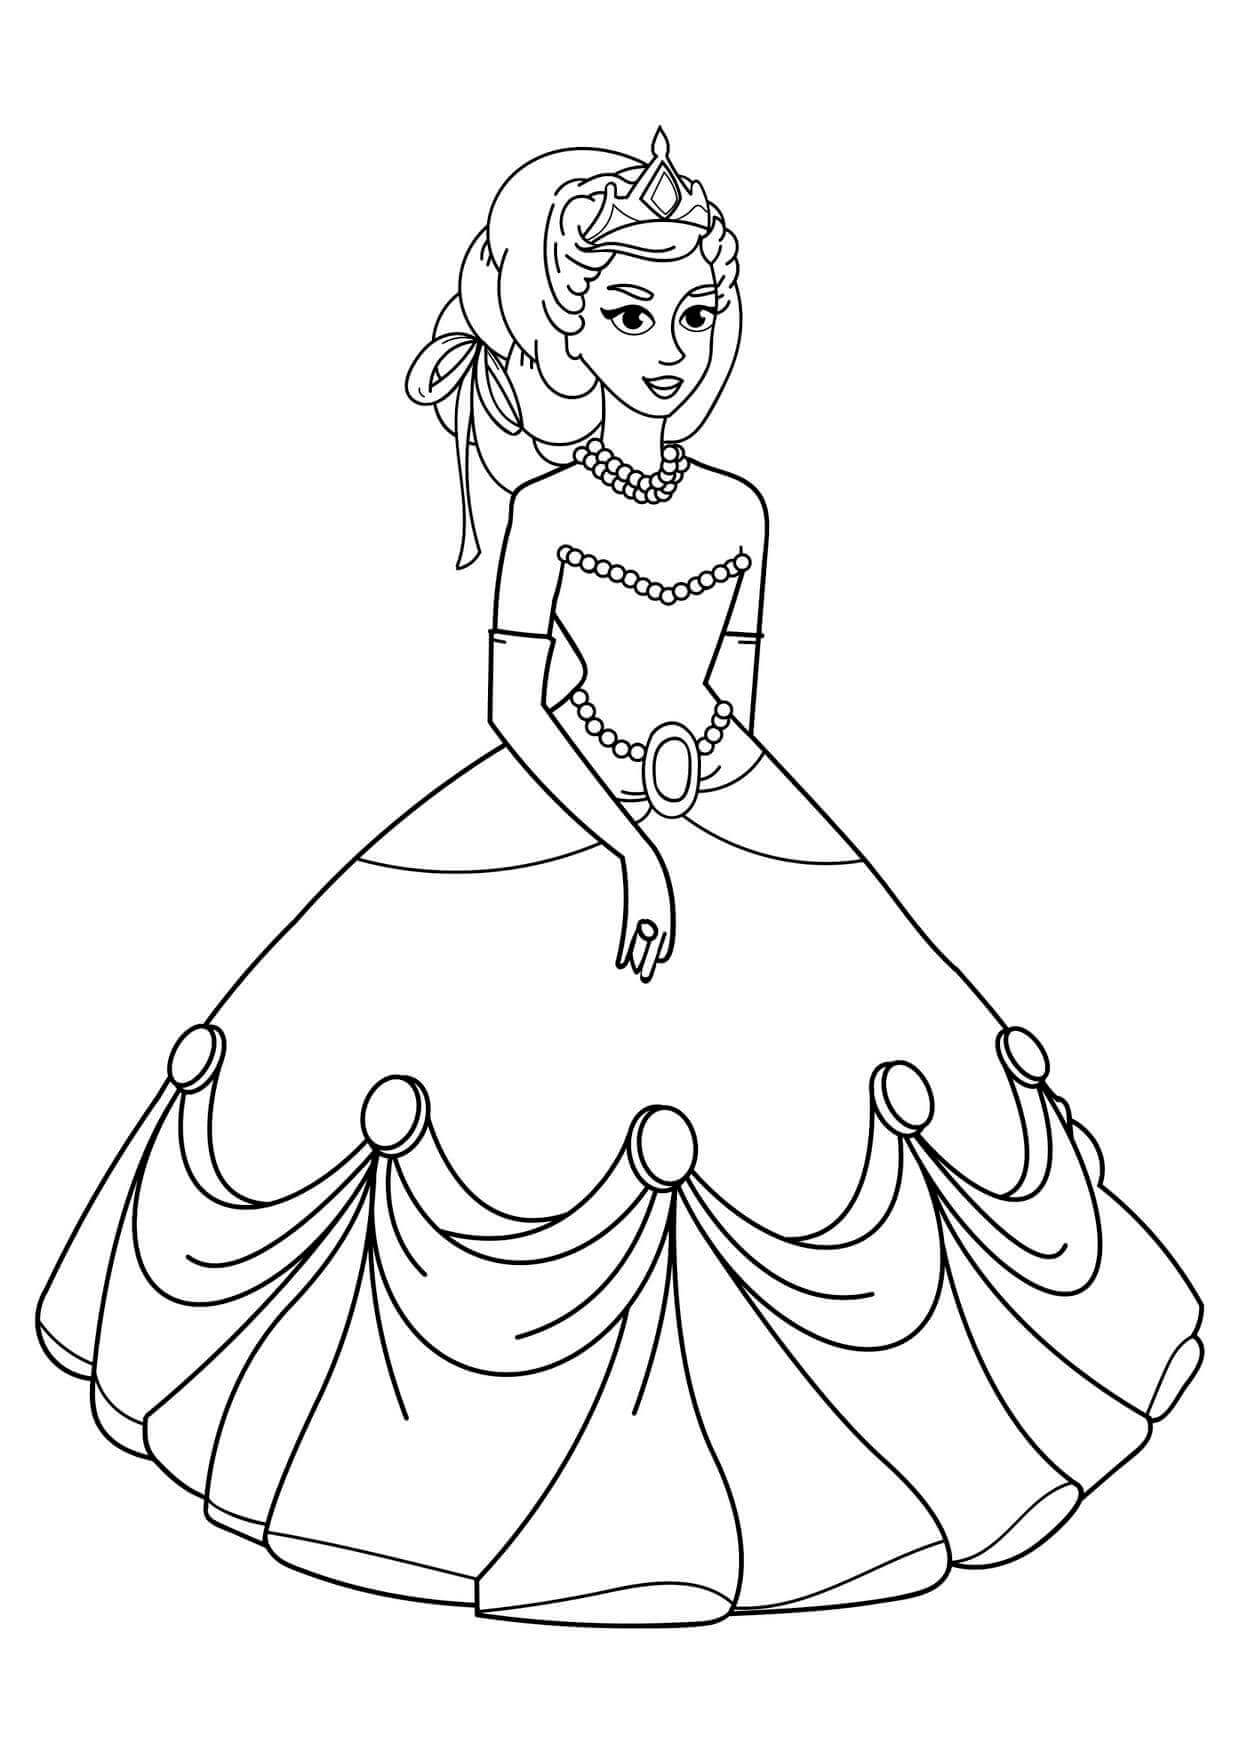 free coloring pages girls equestria girls coloring pages best coloring pages for kids pages free girls coloring